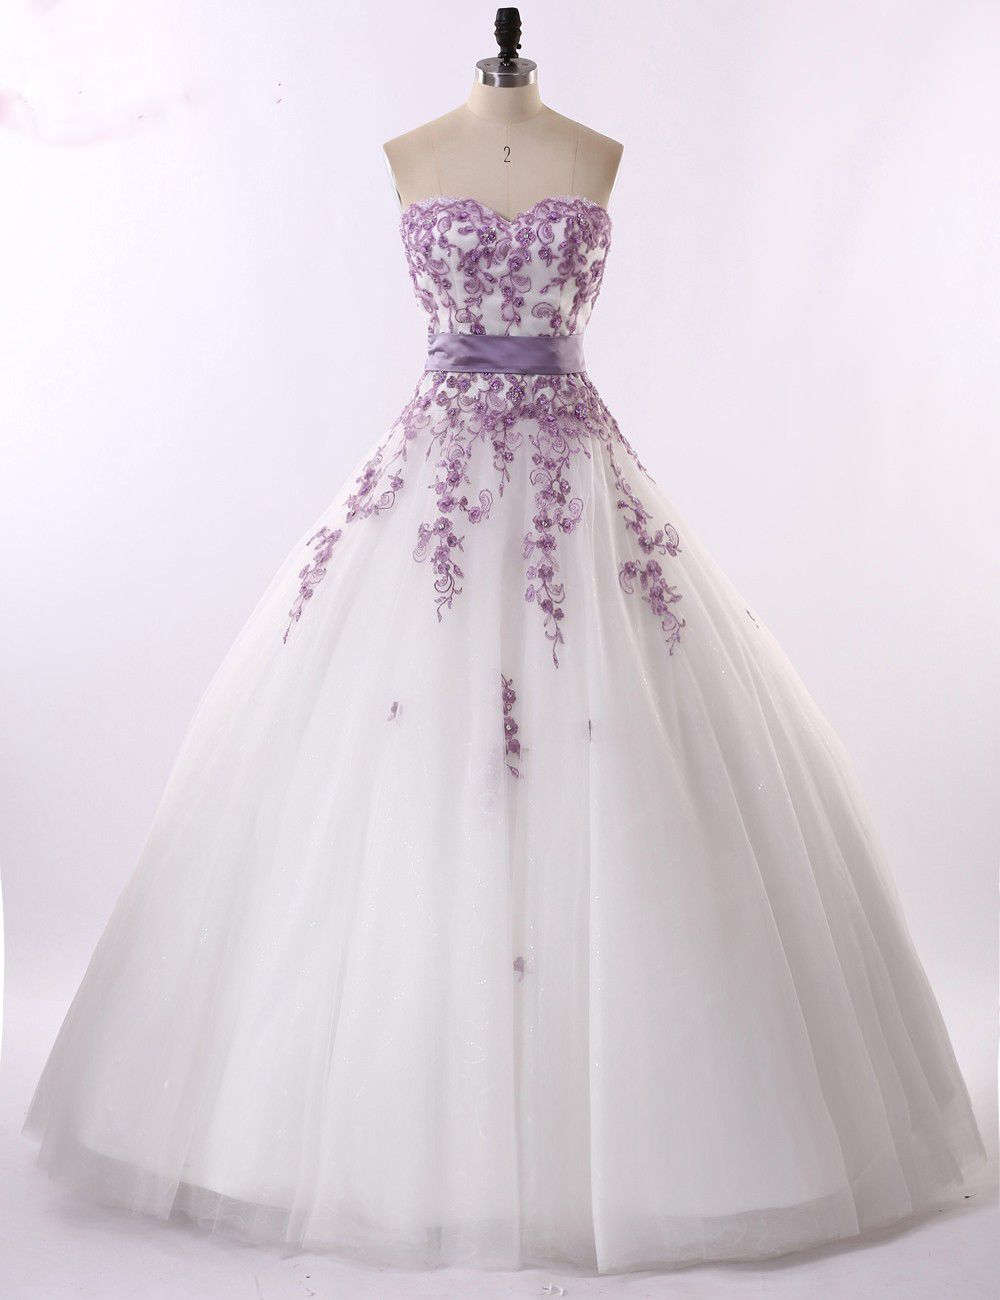 Real Photo White And Light Purple Sweetheart Wedding Dresses Embroidery Dress 2017 Crystal Floor Length Prom Bridal Gown